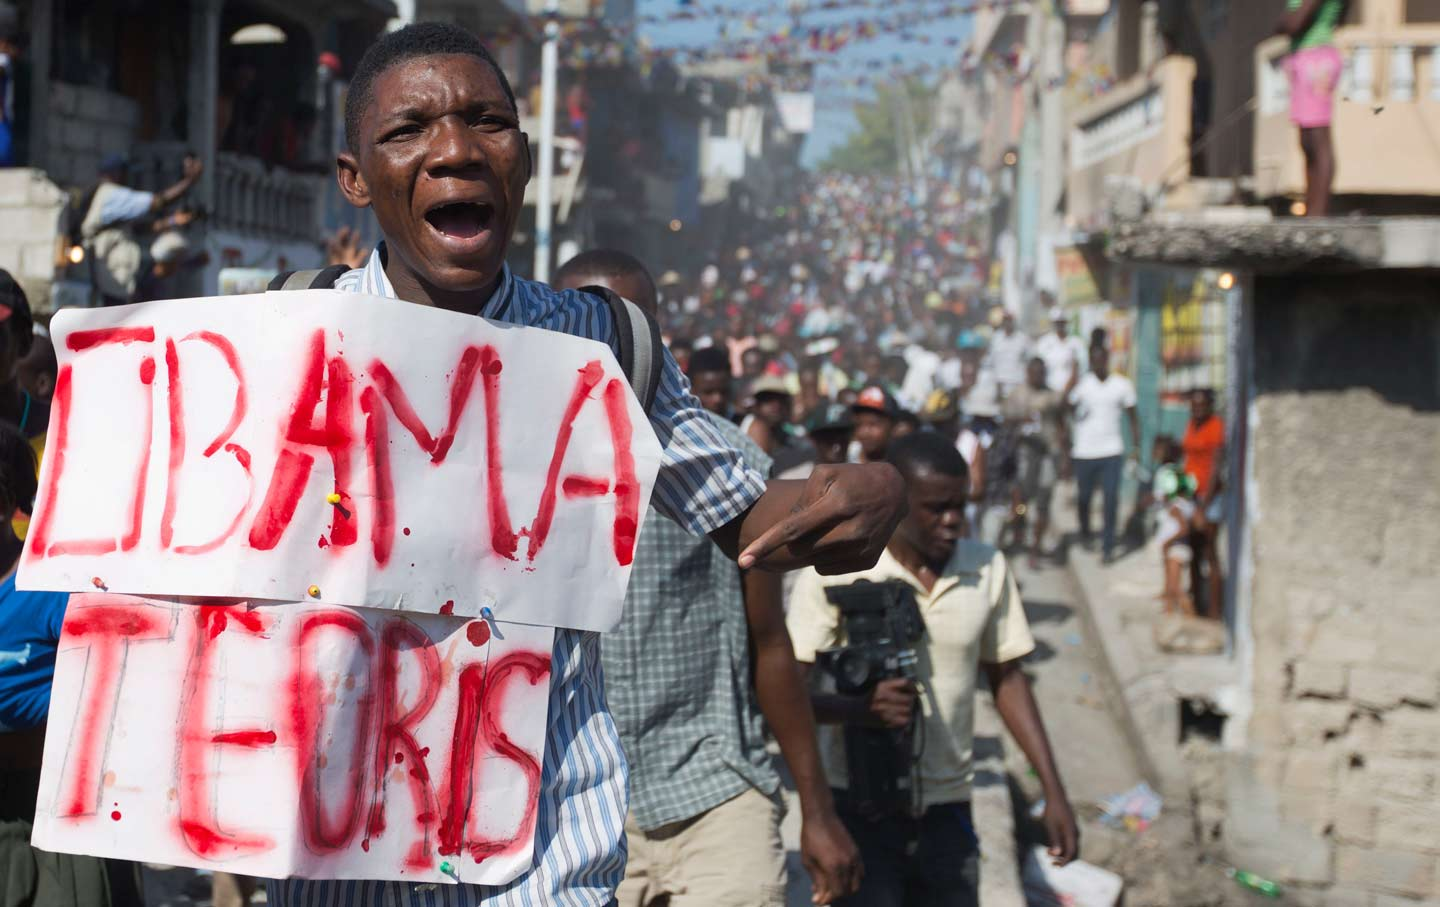 Haiti Protester Upset With Obama